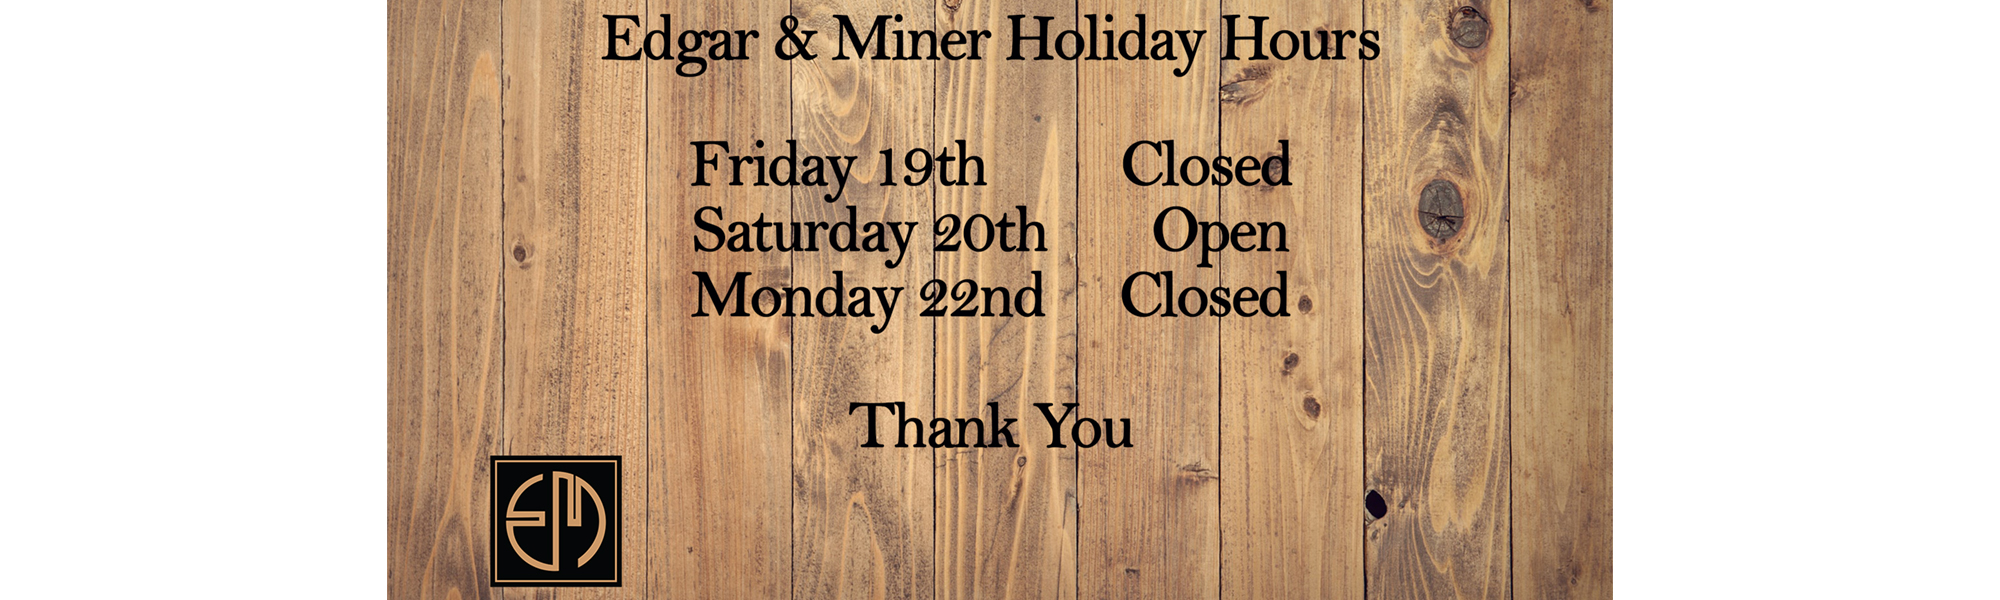 Edgar and Miner Holiday Hours